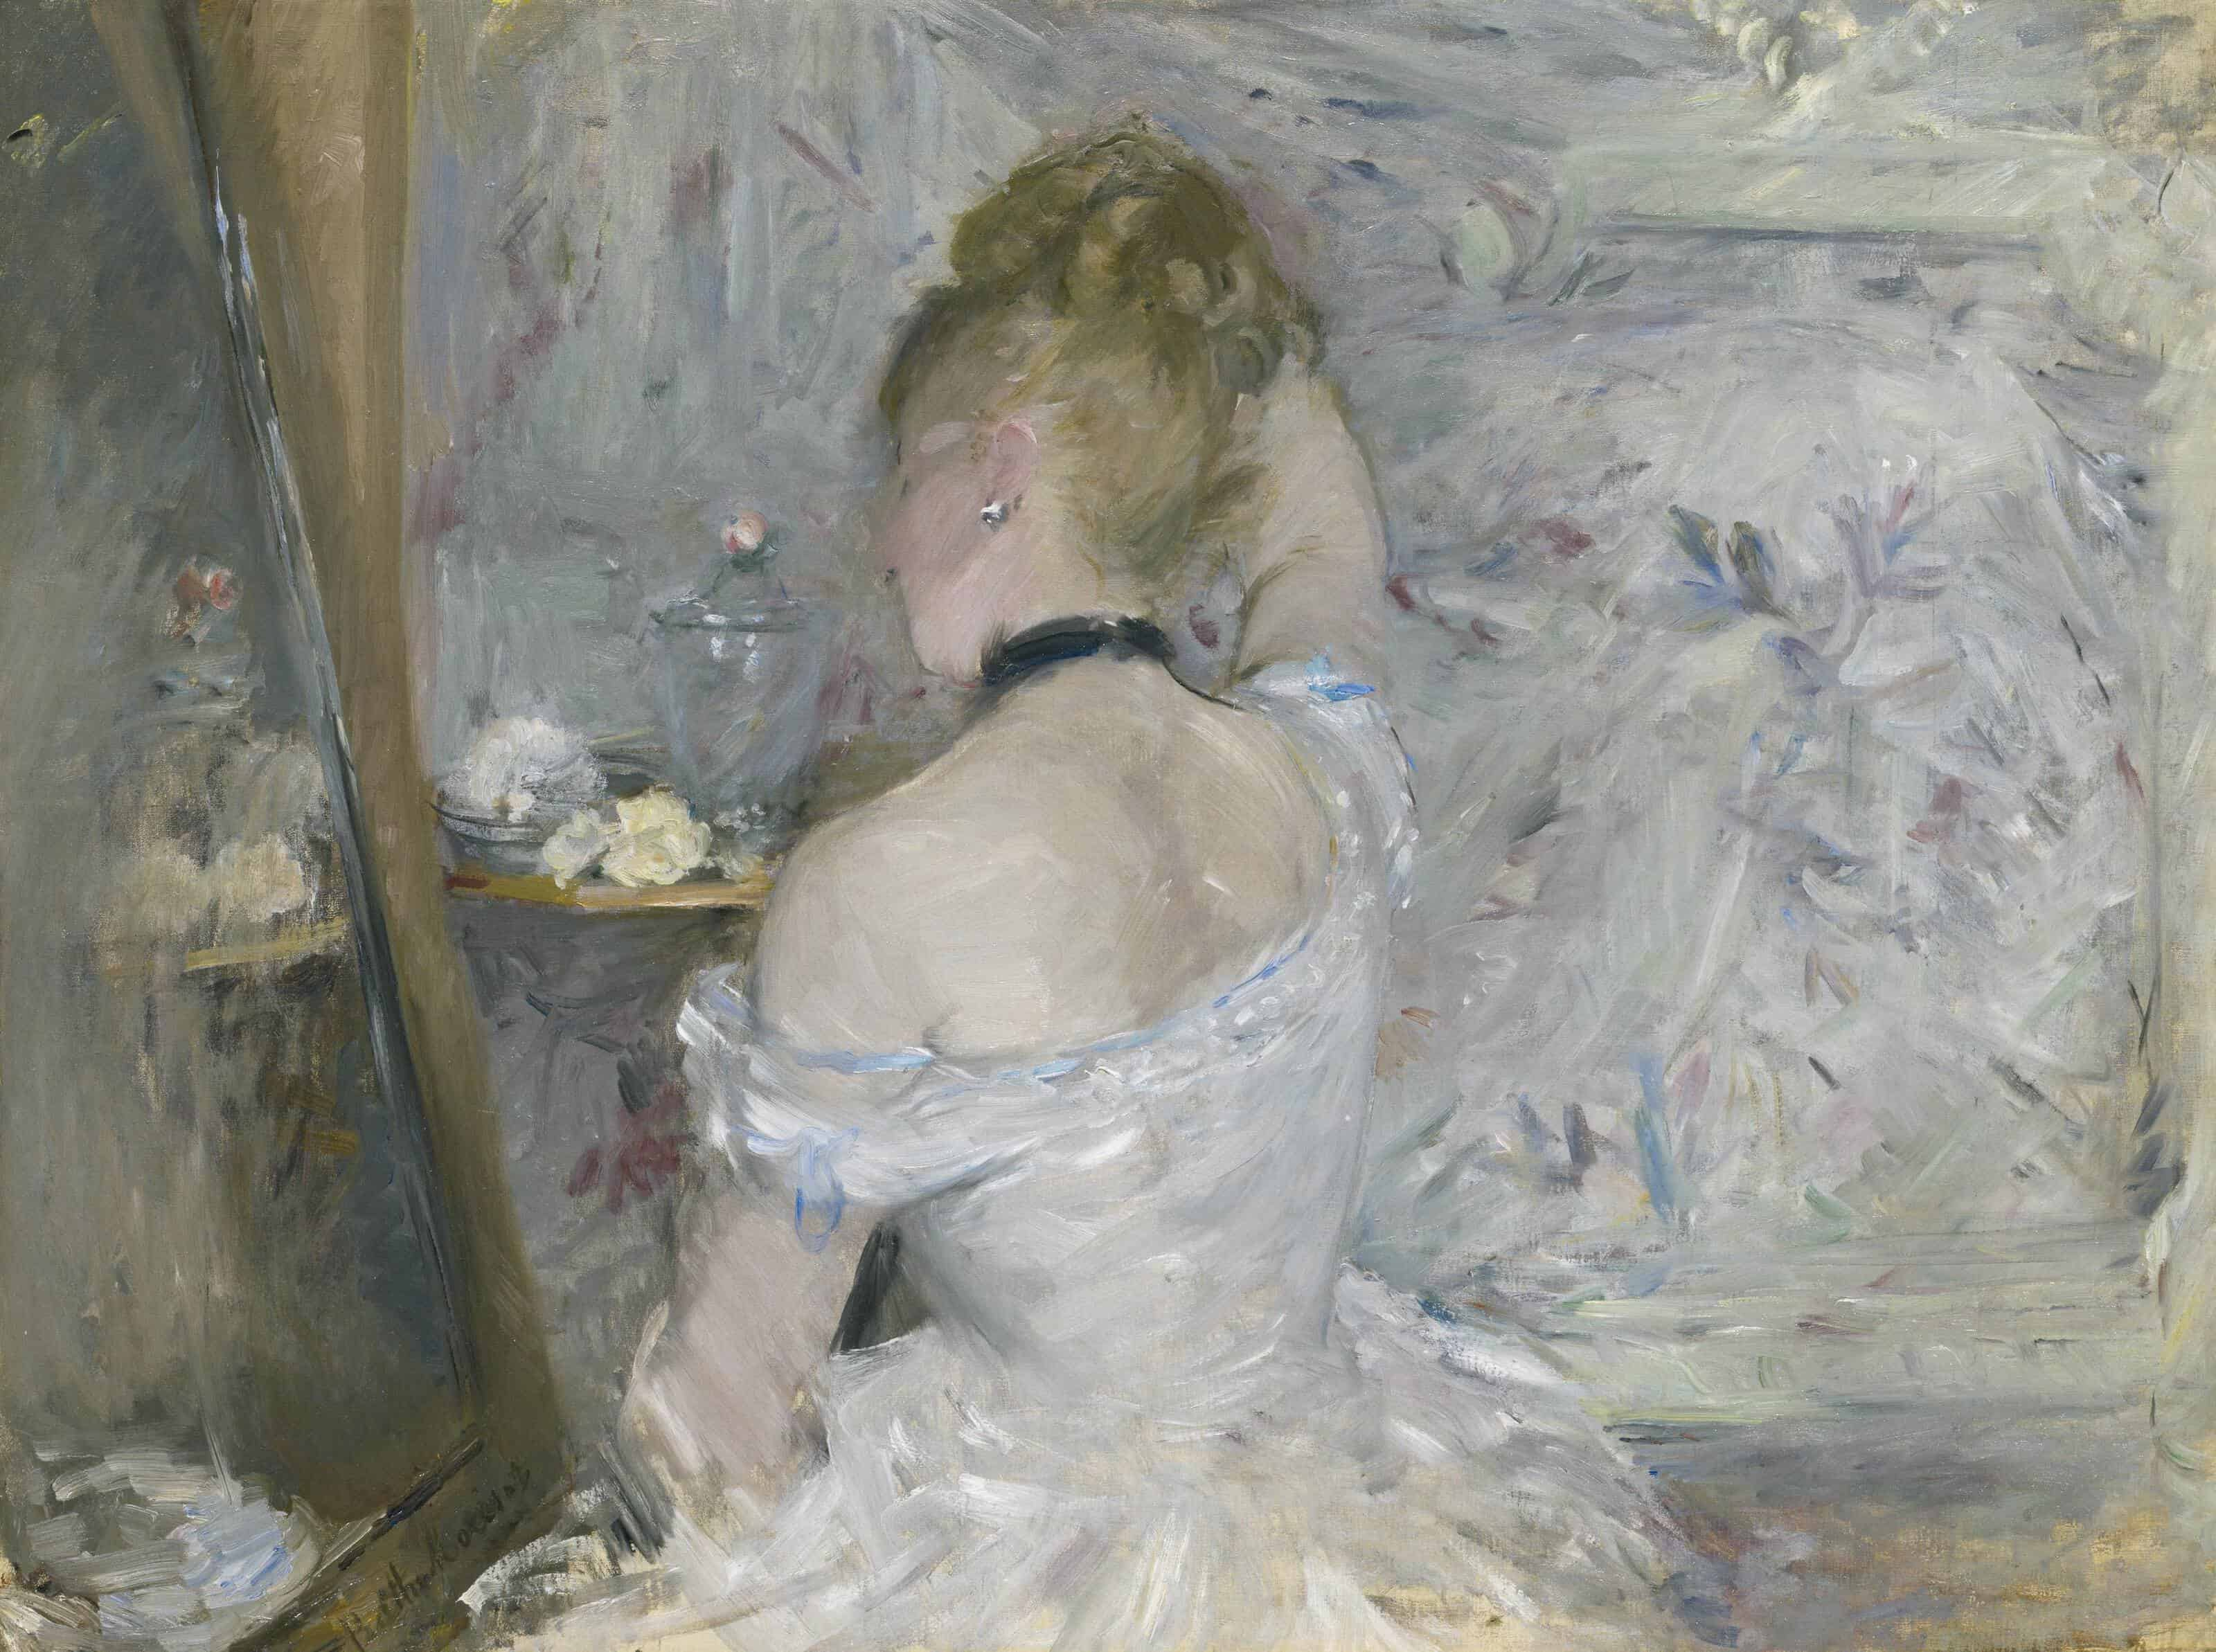 Berthe MorisotFrench, 1841-1895Woman at Her Toilette, 1875/80Oil on canvas23 3/4 x 31 5/8 in. (60.3 x 80.4 cm)Stickney Fund1924.127The Art Institute of Chicago